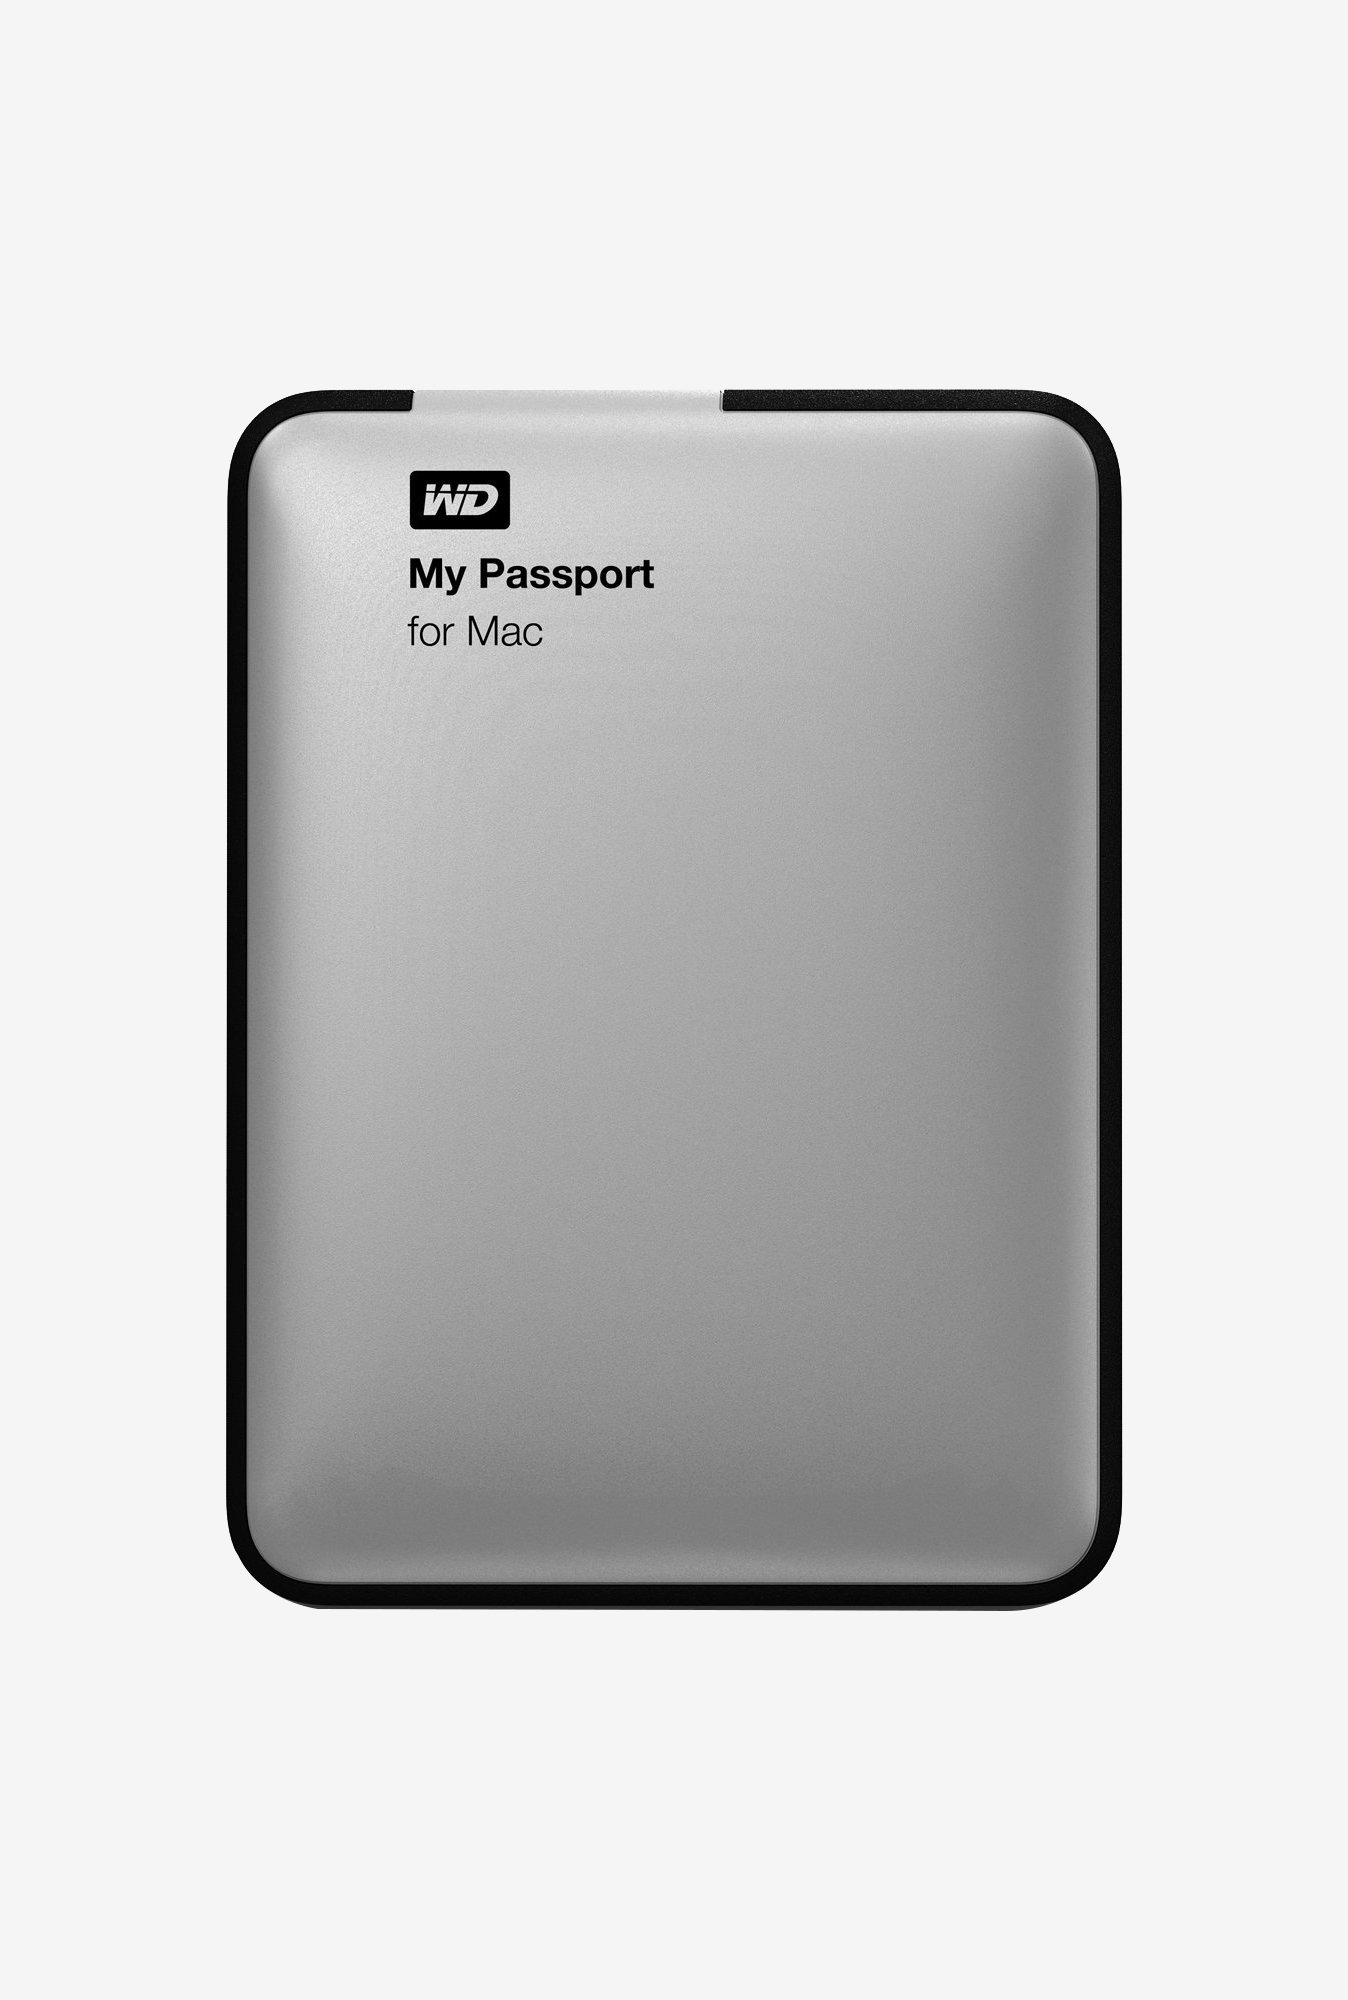 WD My Passport 1 TB Hard Disk for Mac (Silver)